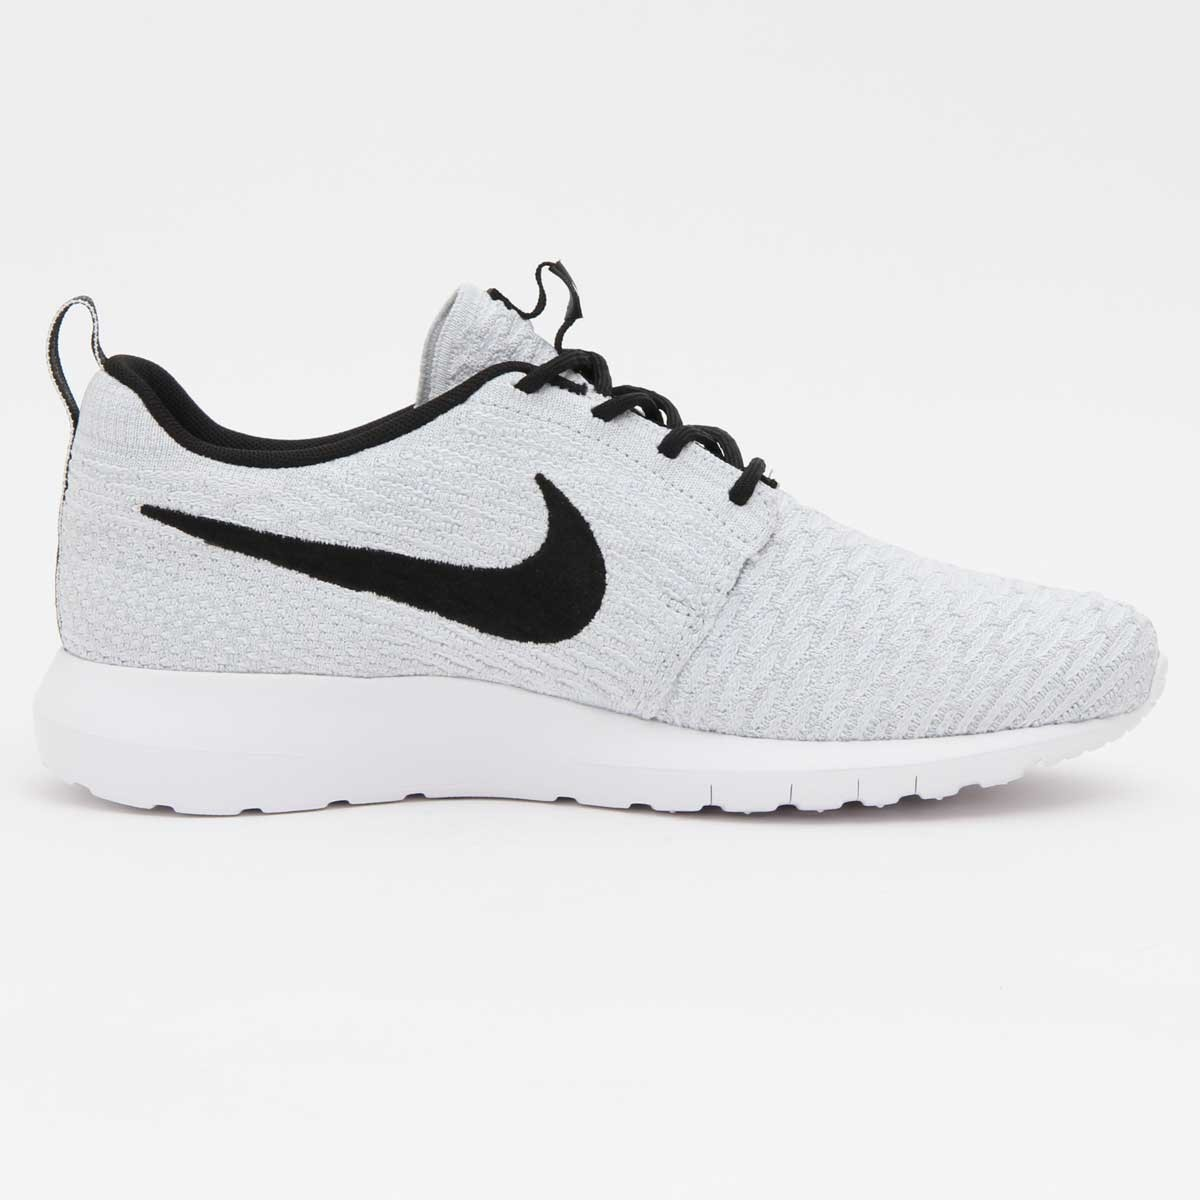 big sale 16f45 e8c8a ... Nike Roshe Run NM Flyknit Hommes Chaussures De Sport Blanche Noir  677243-101 ...